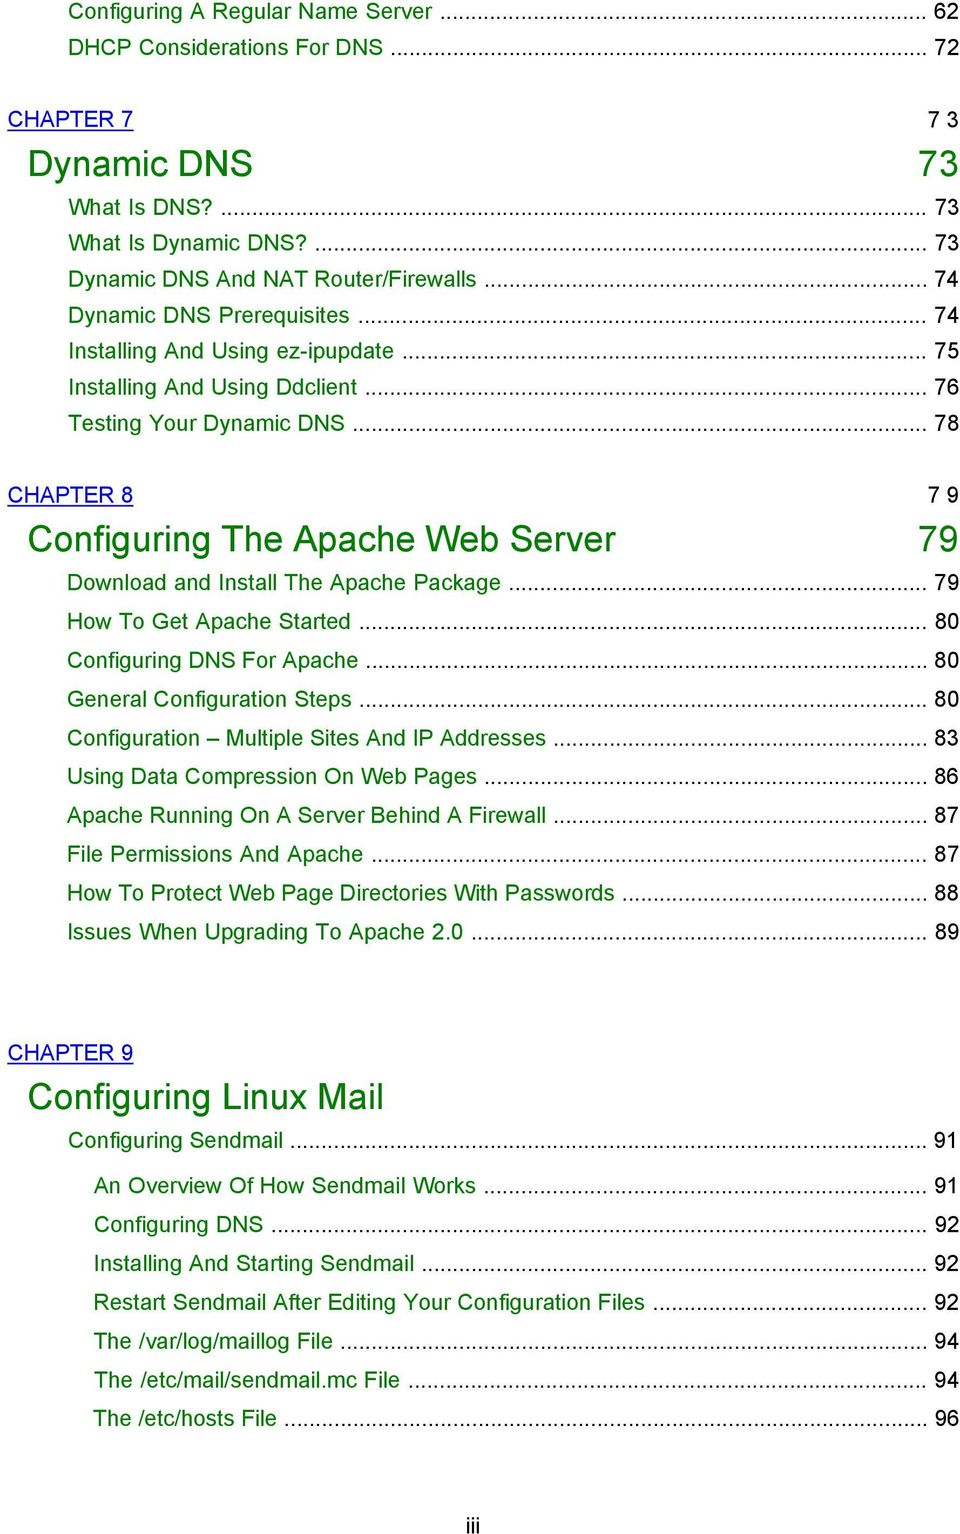 .. 78 CHAPTER 8 7 9 Configuring The Apache Web Server 79 Download and Install The Apache Package... 79 How To Get Apache Started... 80 Configuring DNS For Apache... 80 General Configuration Steps.